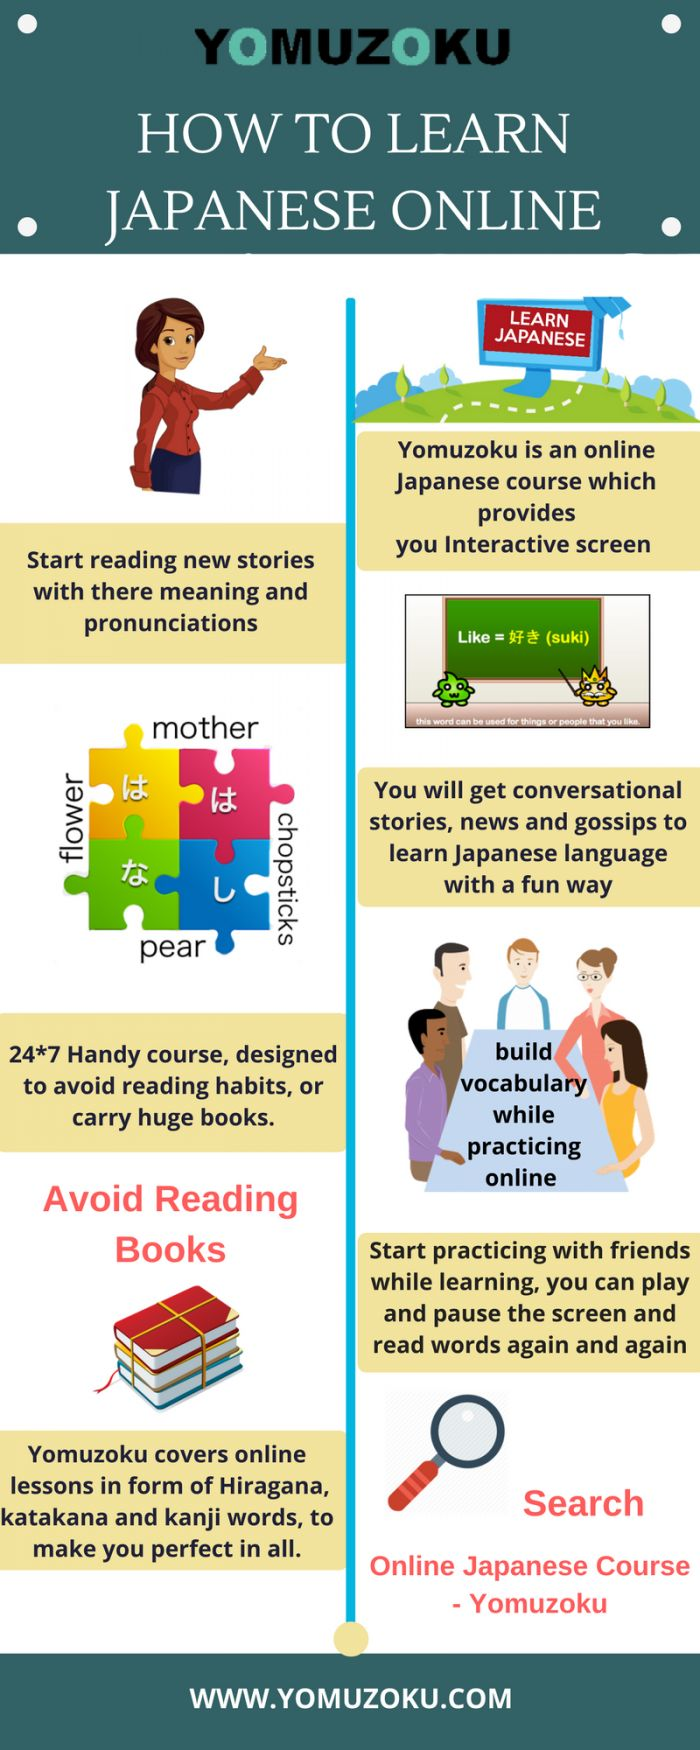 How to learn Japanese Online Infographic #Infographics